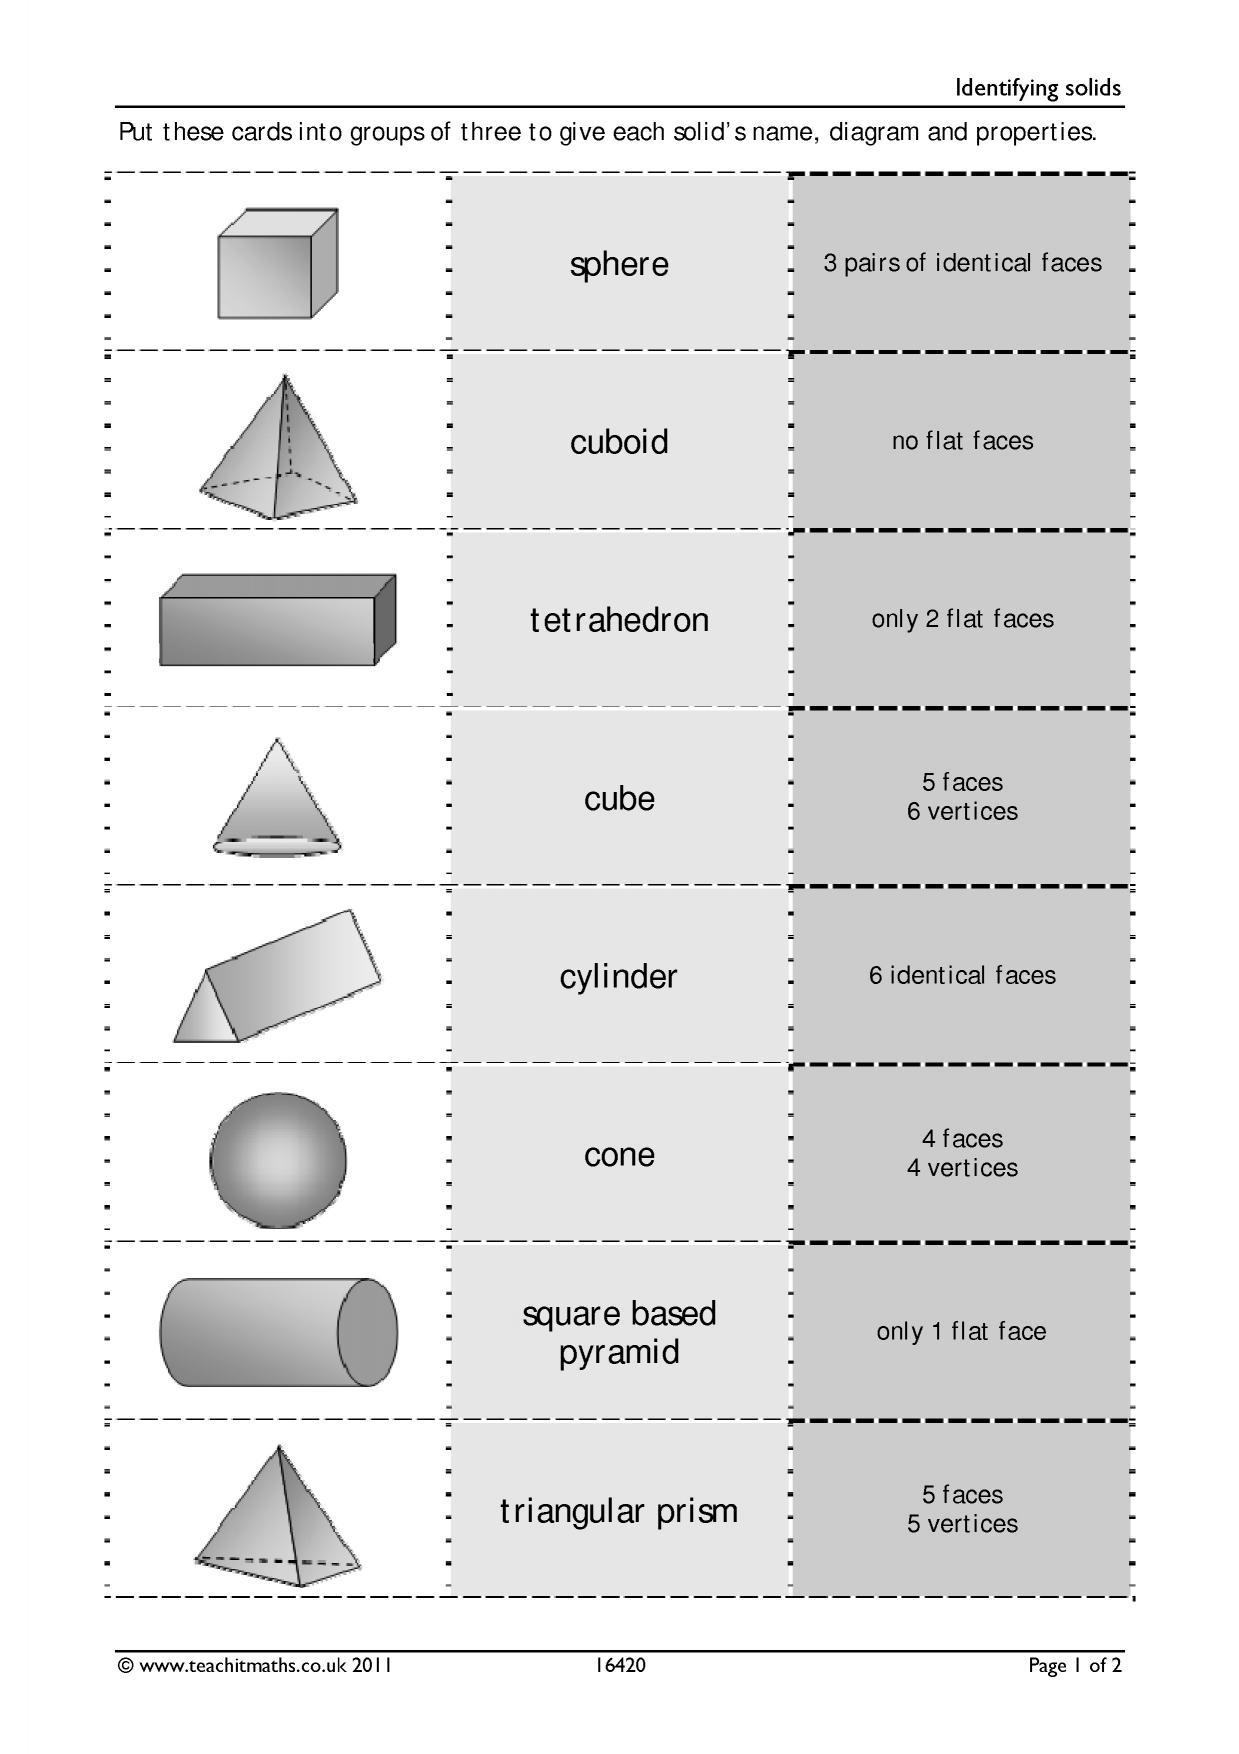 KS3 | Solids and nets – identifying 3D shapes | Teachit Maths